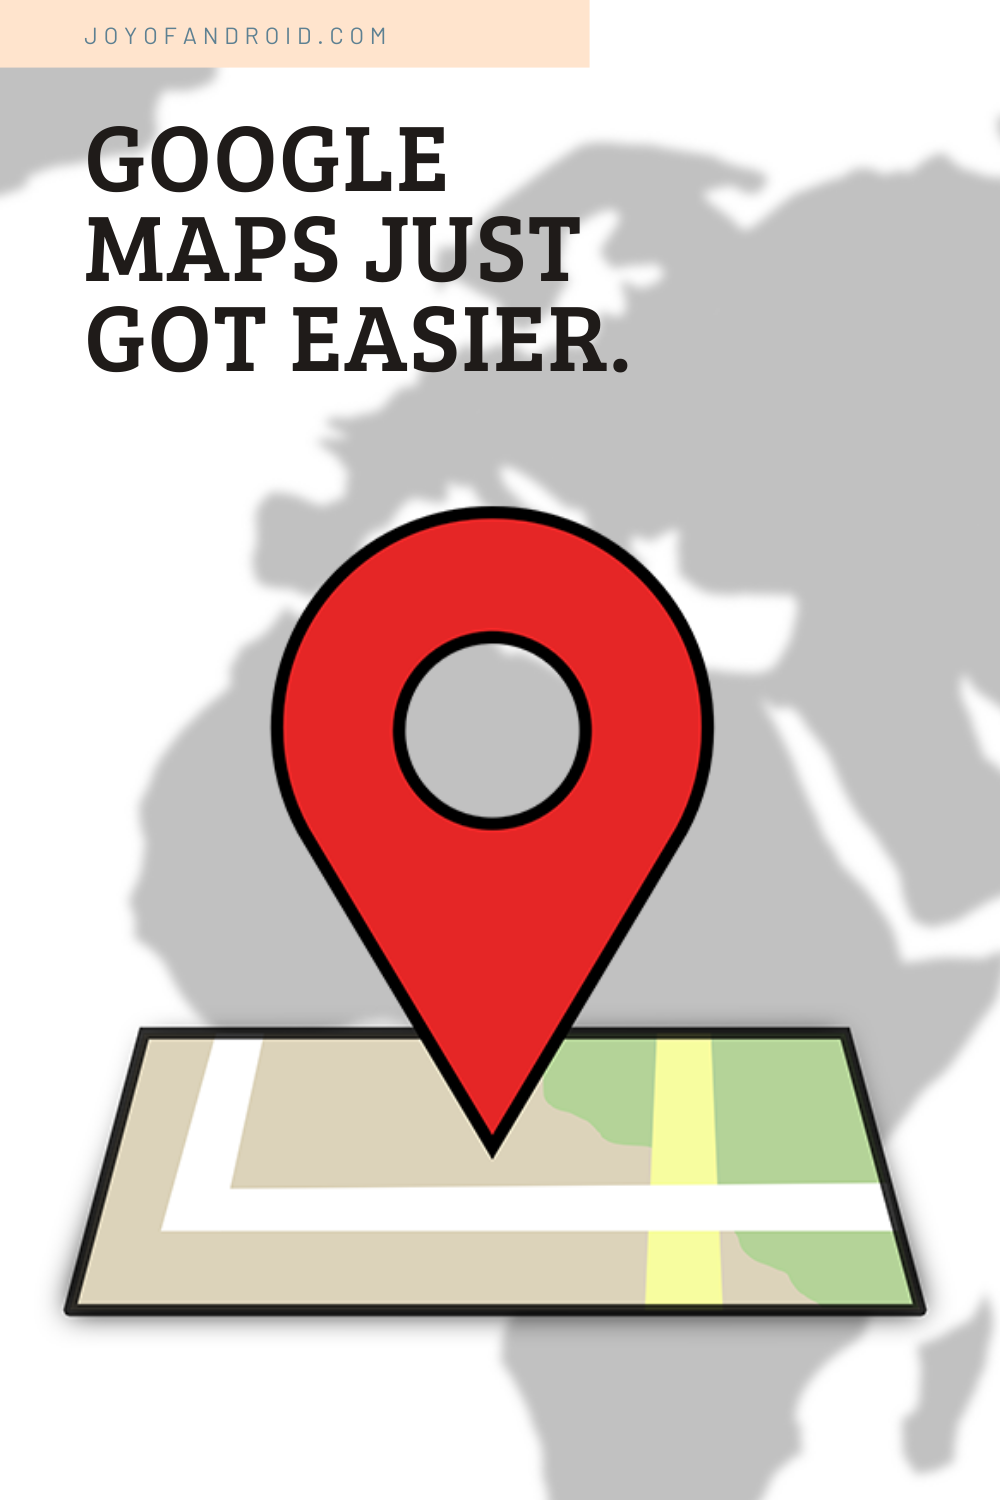 How To Get Address Of Current Location In Android